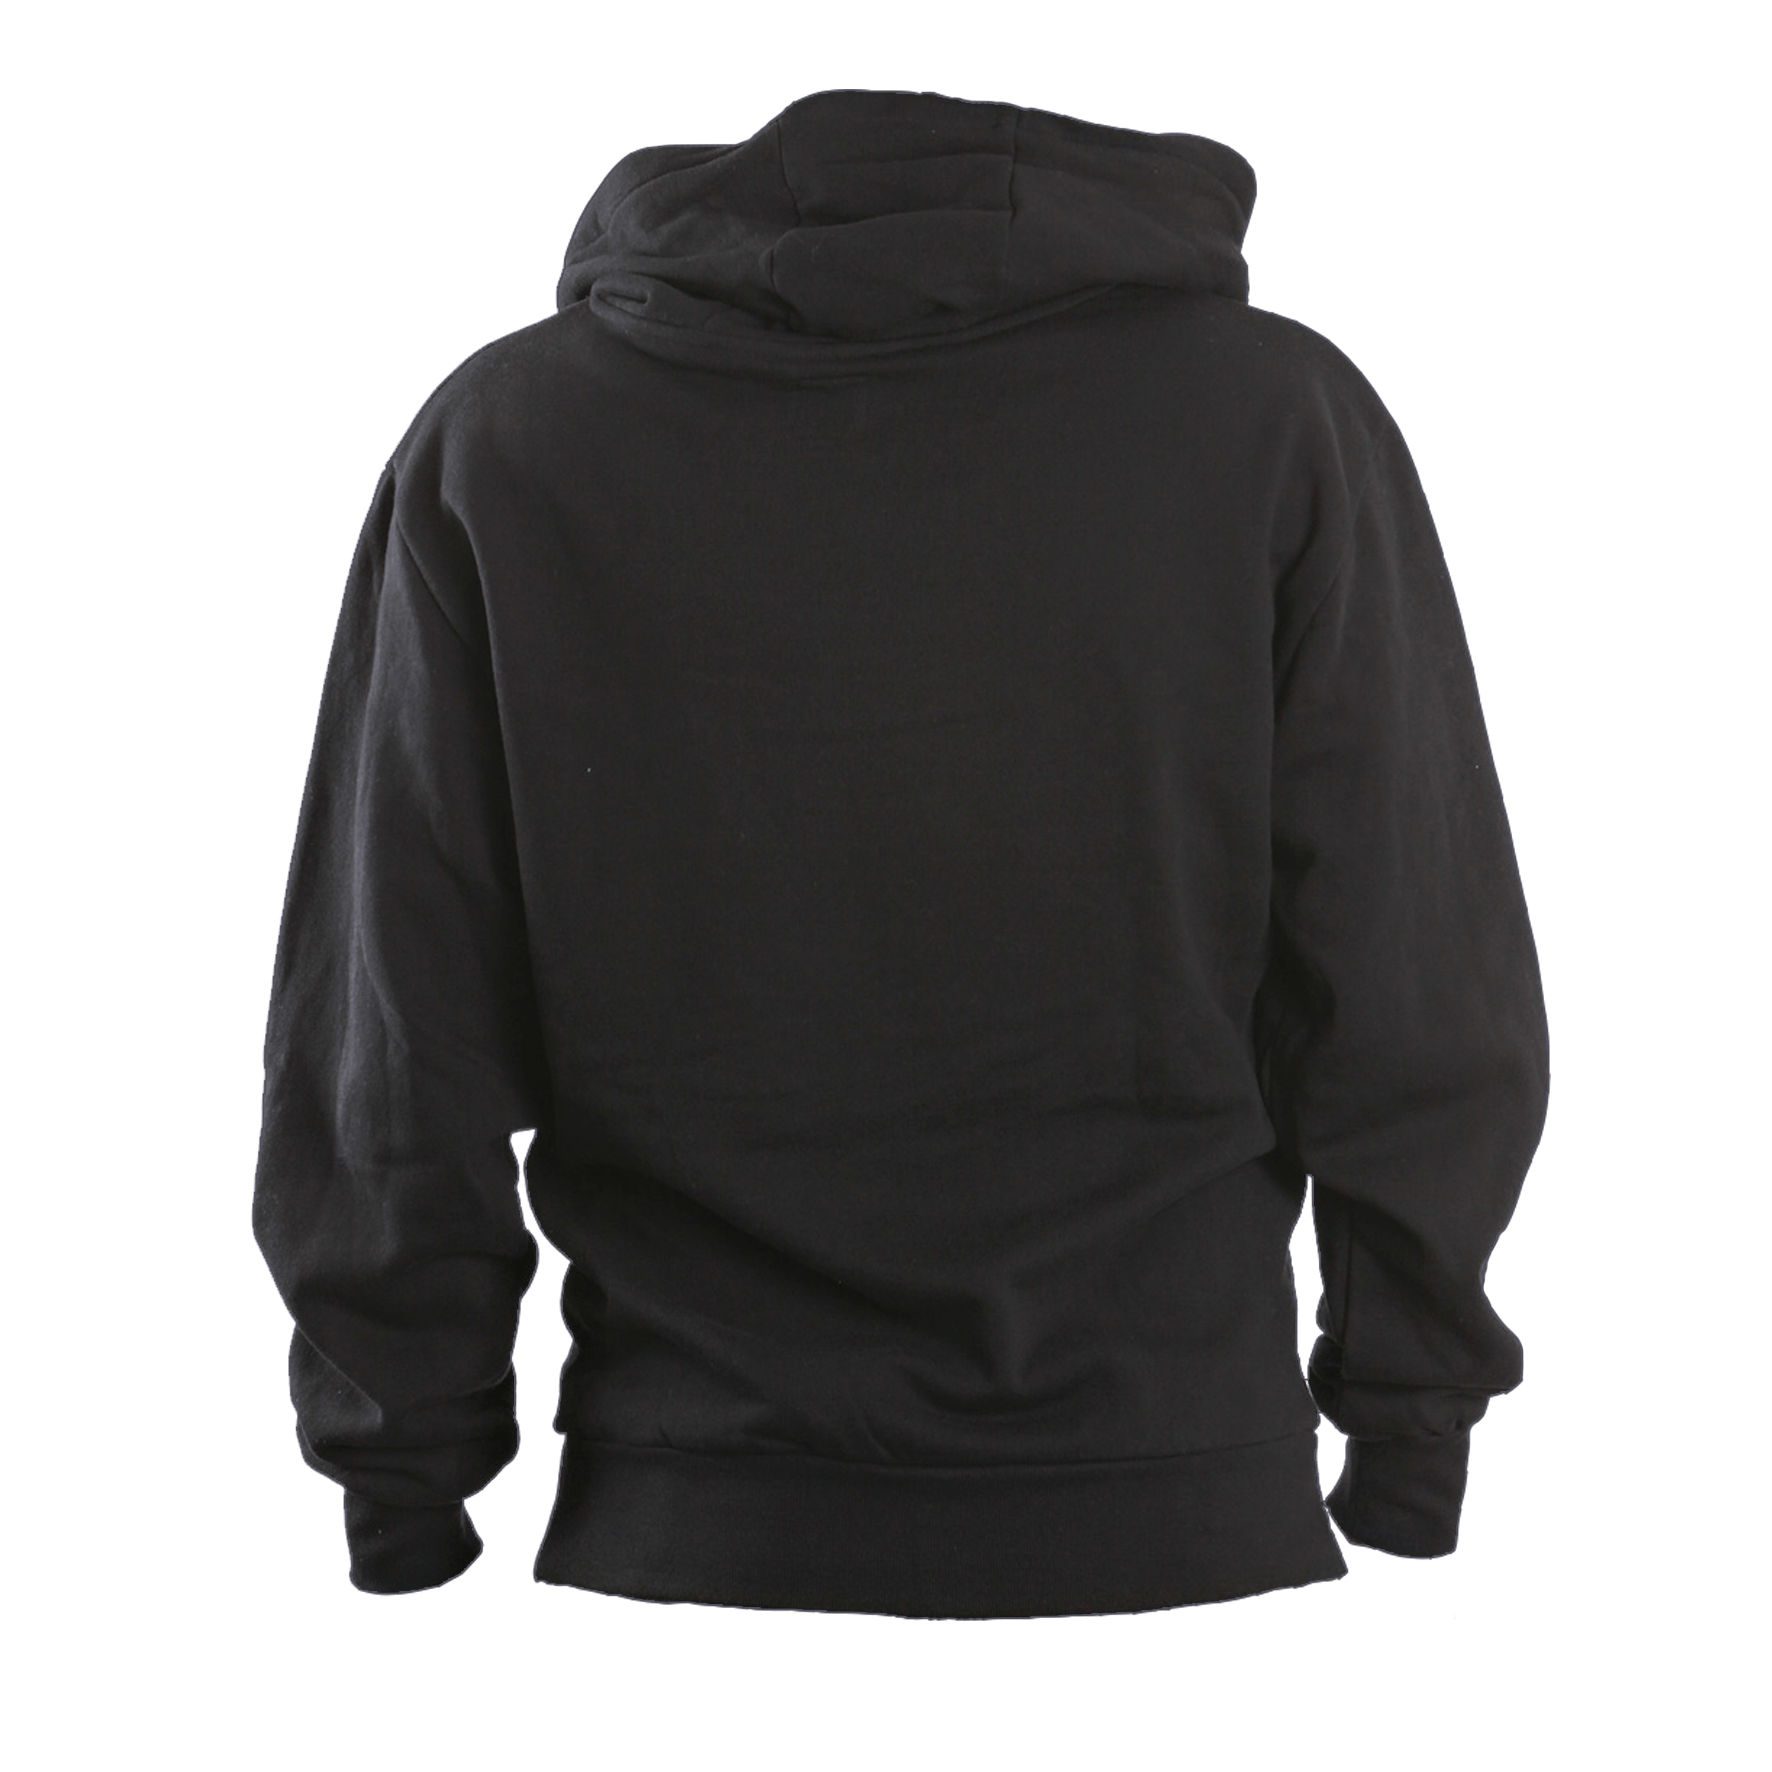 Images of hoodies